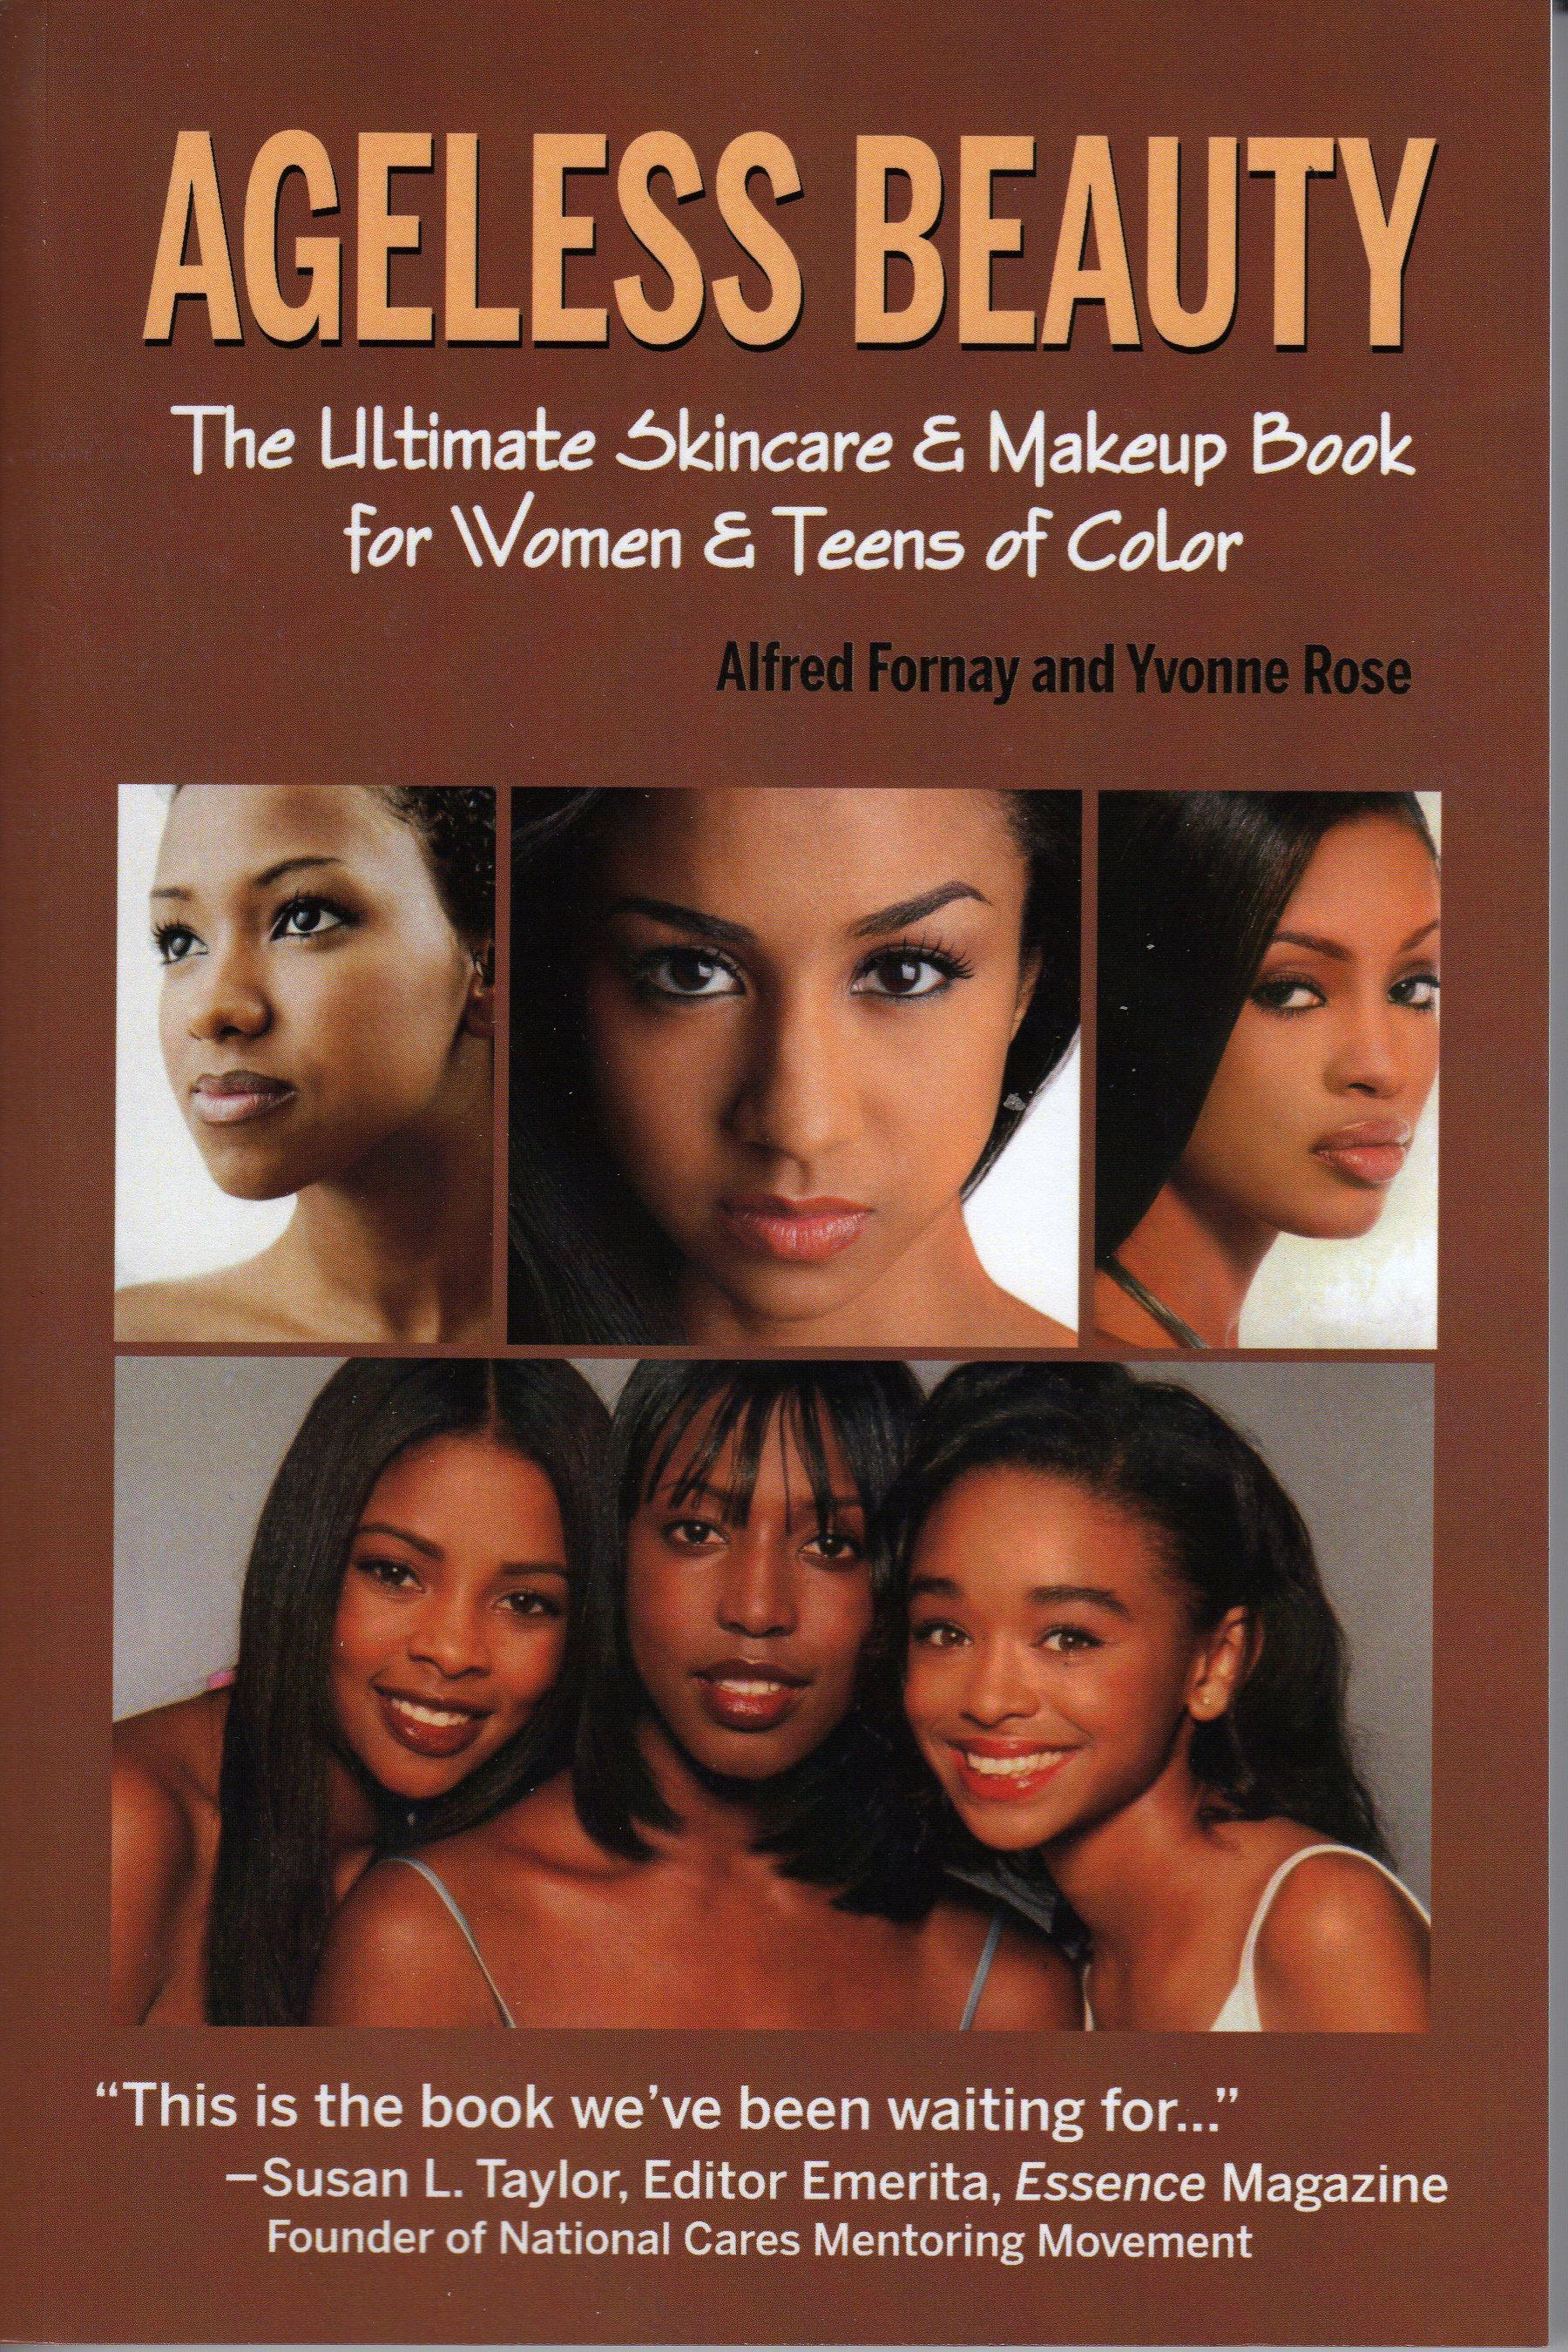 Ageless Beauty:  The Ultimate Skin Care and Makeup Guide for Women and Teens of Color